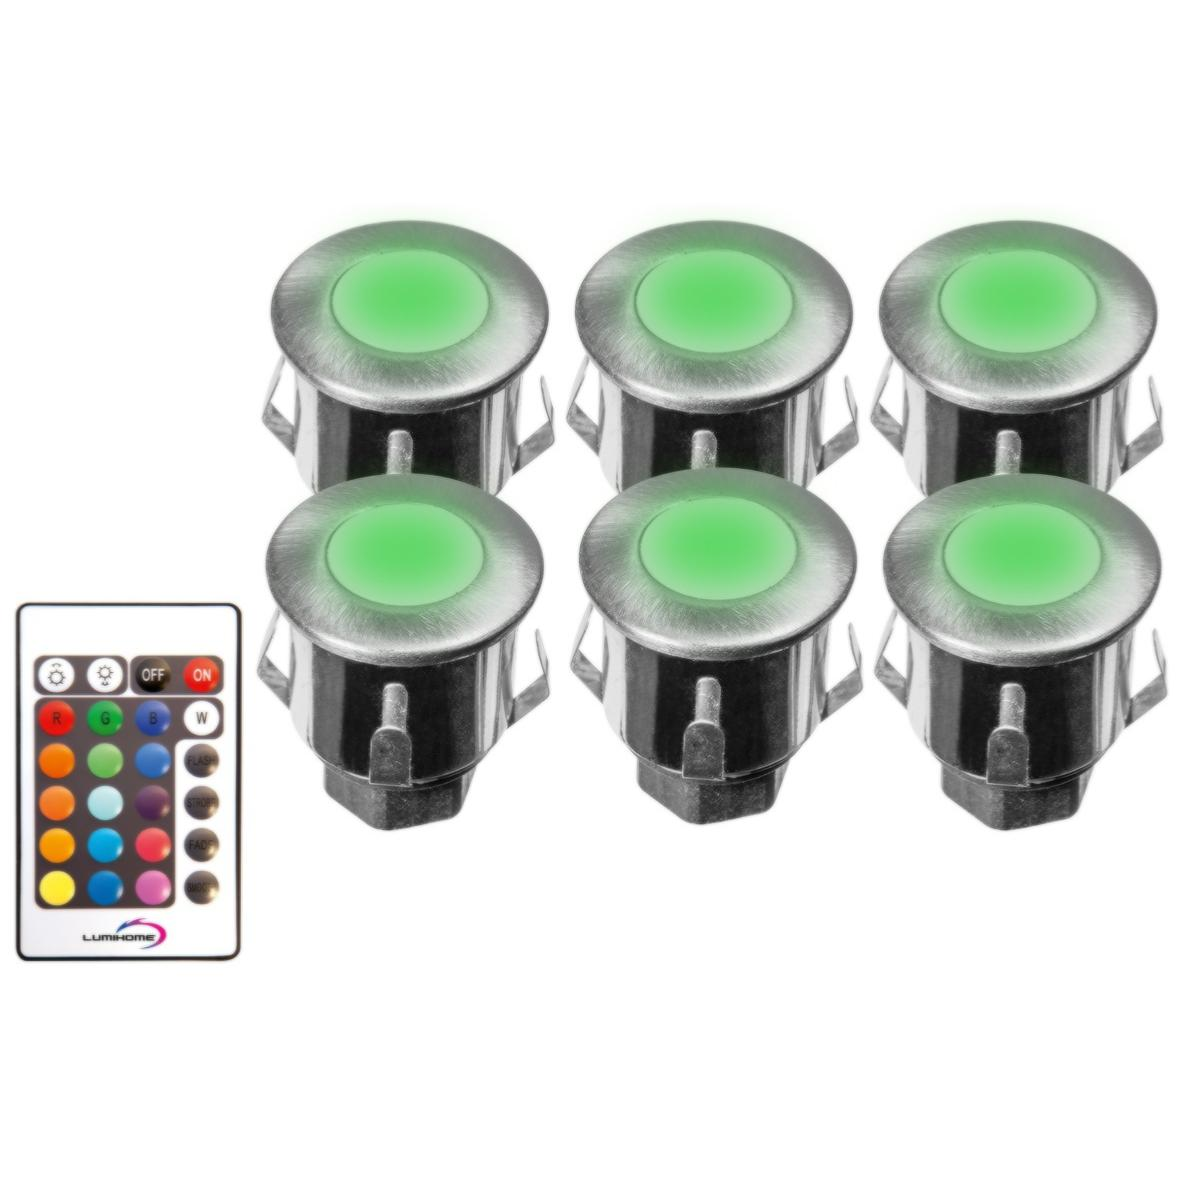 spot terrasse piscine rgb 12v led ip67 kit de 6 spot led rgb